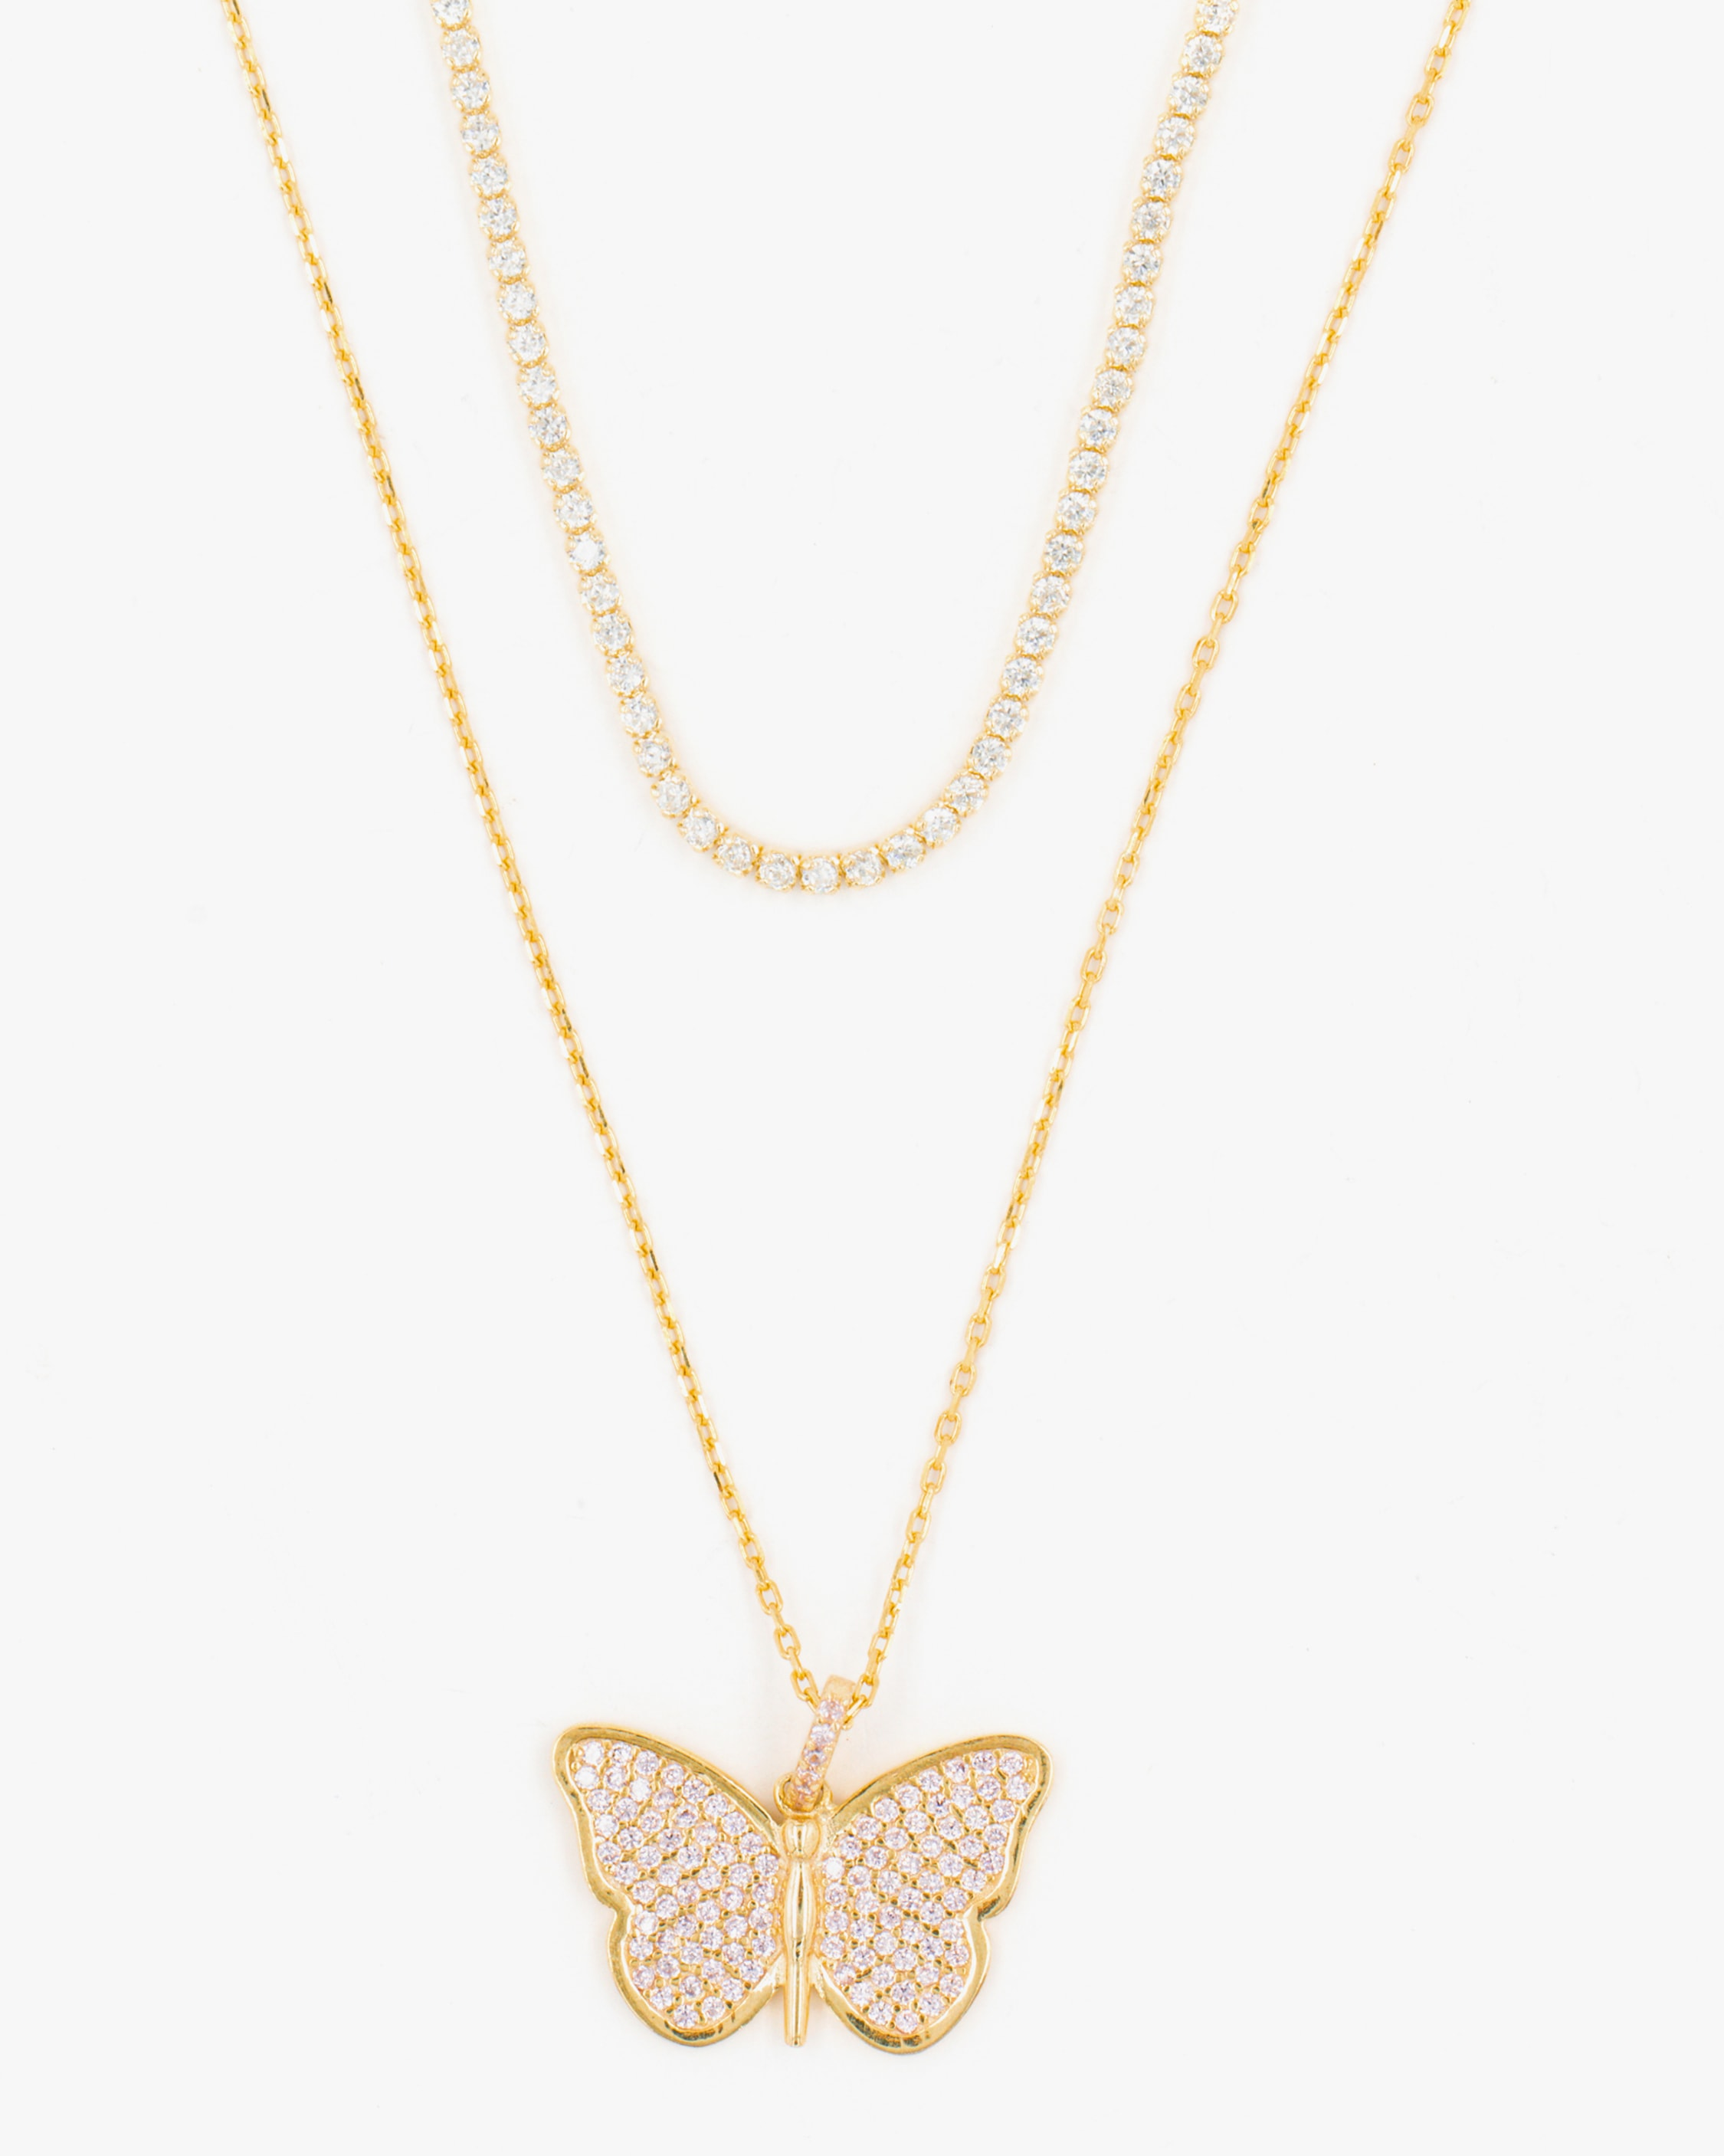 SHYMI Exclusive Butterfly Necklace & Tennis Choker Set 1